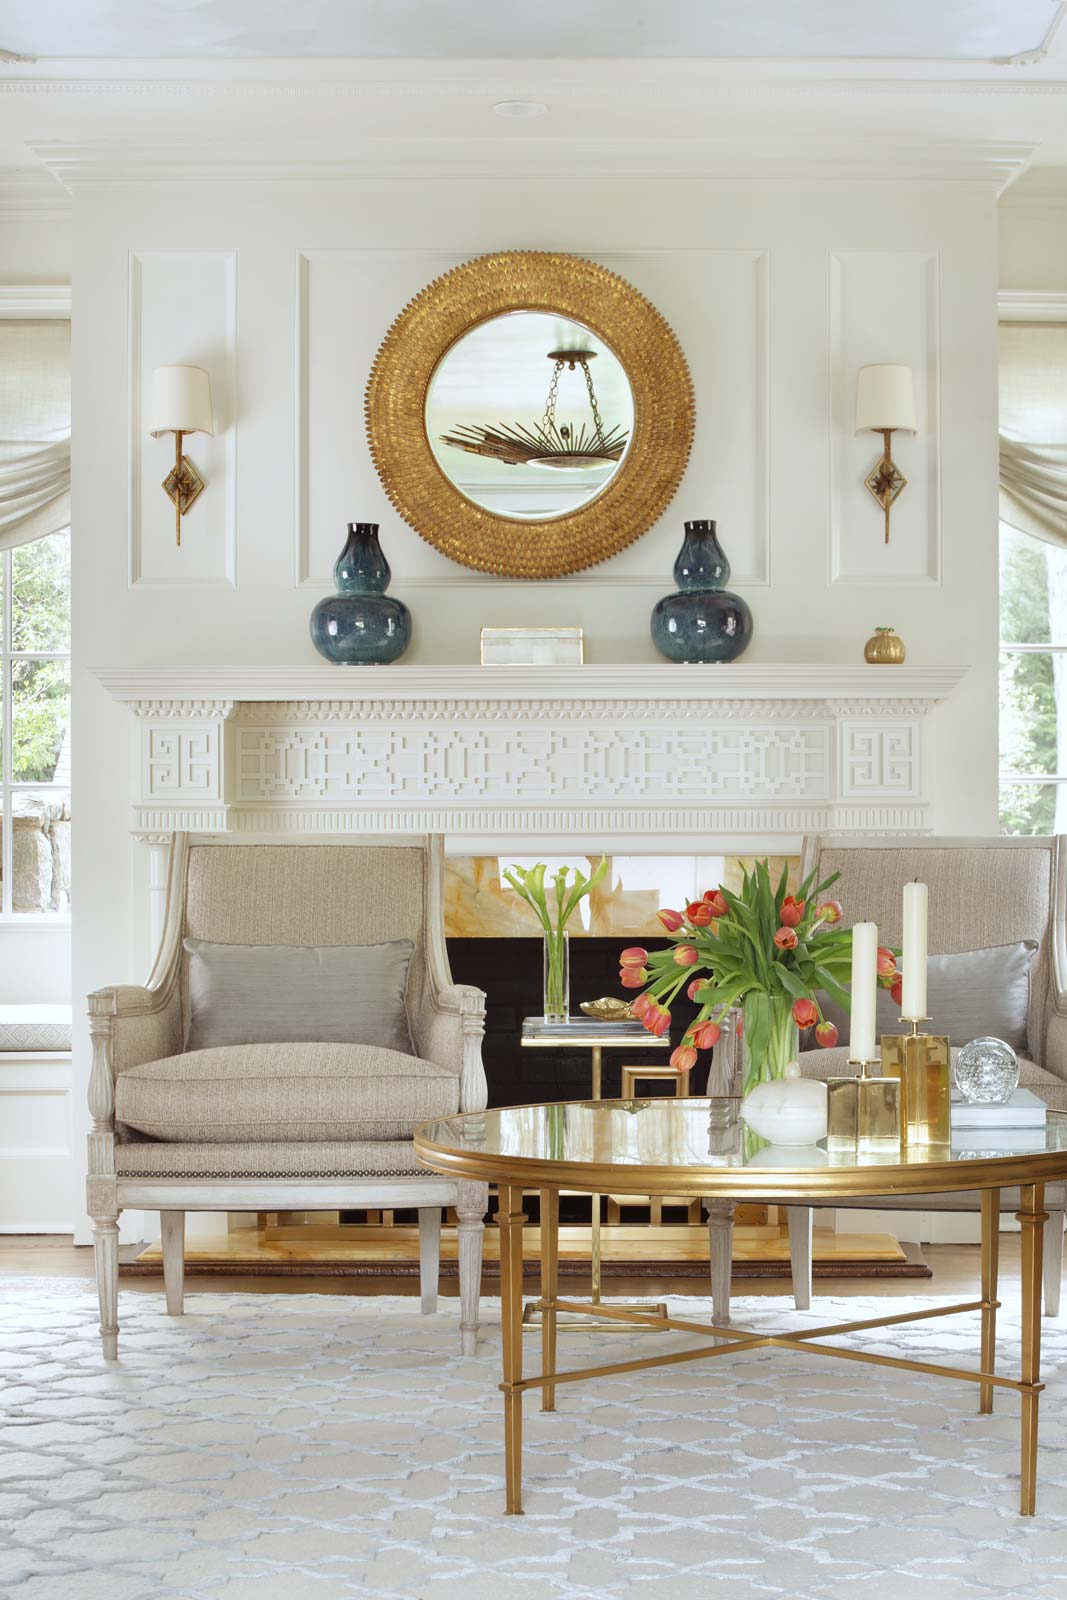 Living-room-fireplace-coffee-table-chairs-mirror | Valerie Grant ...